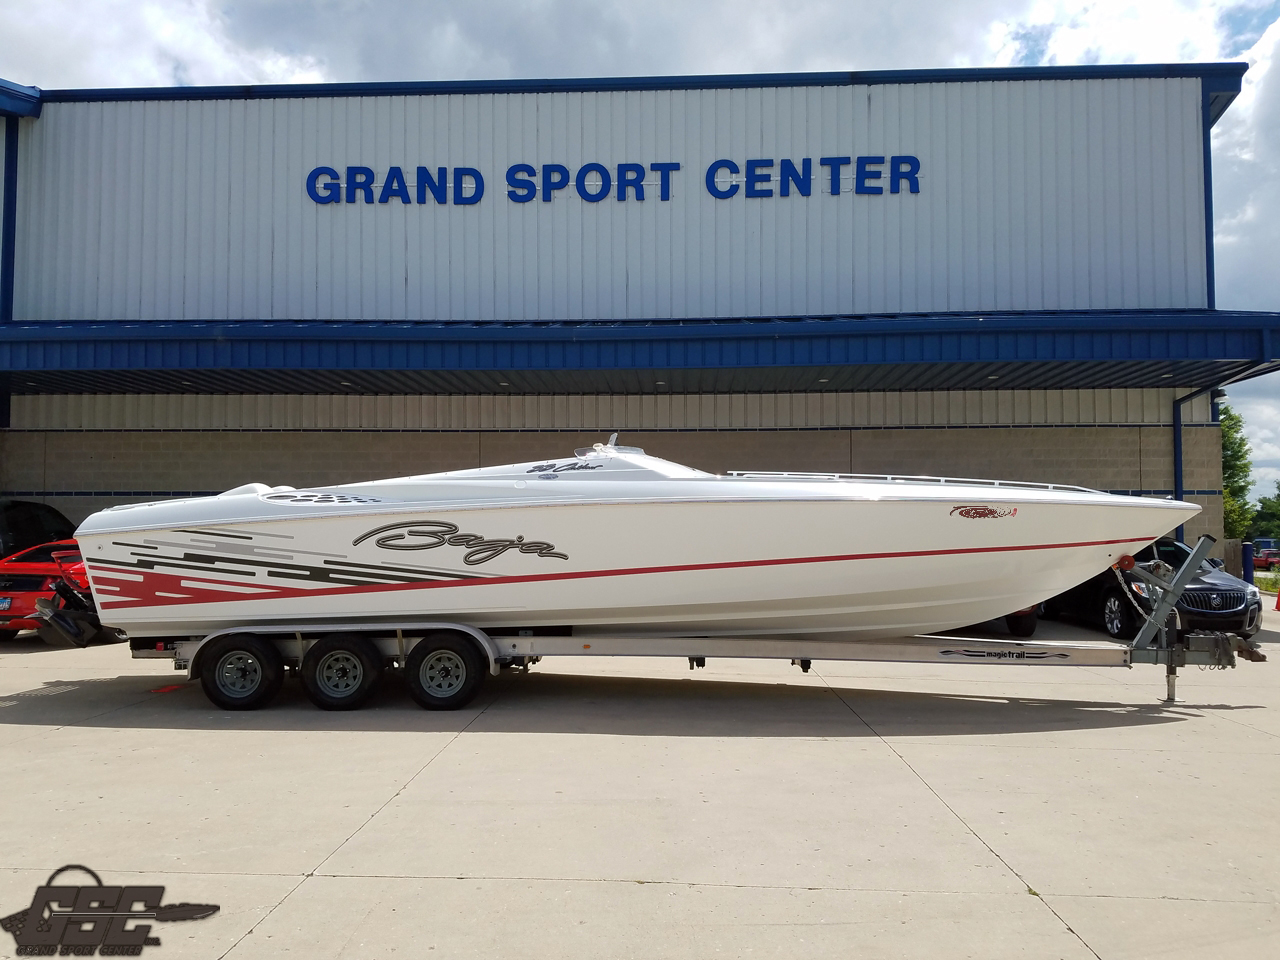 1999 Baja 33 Outlaw - SOLD in 24 HOURS!